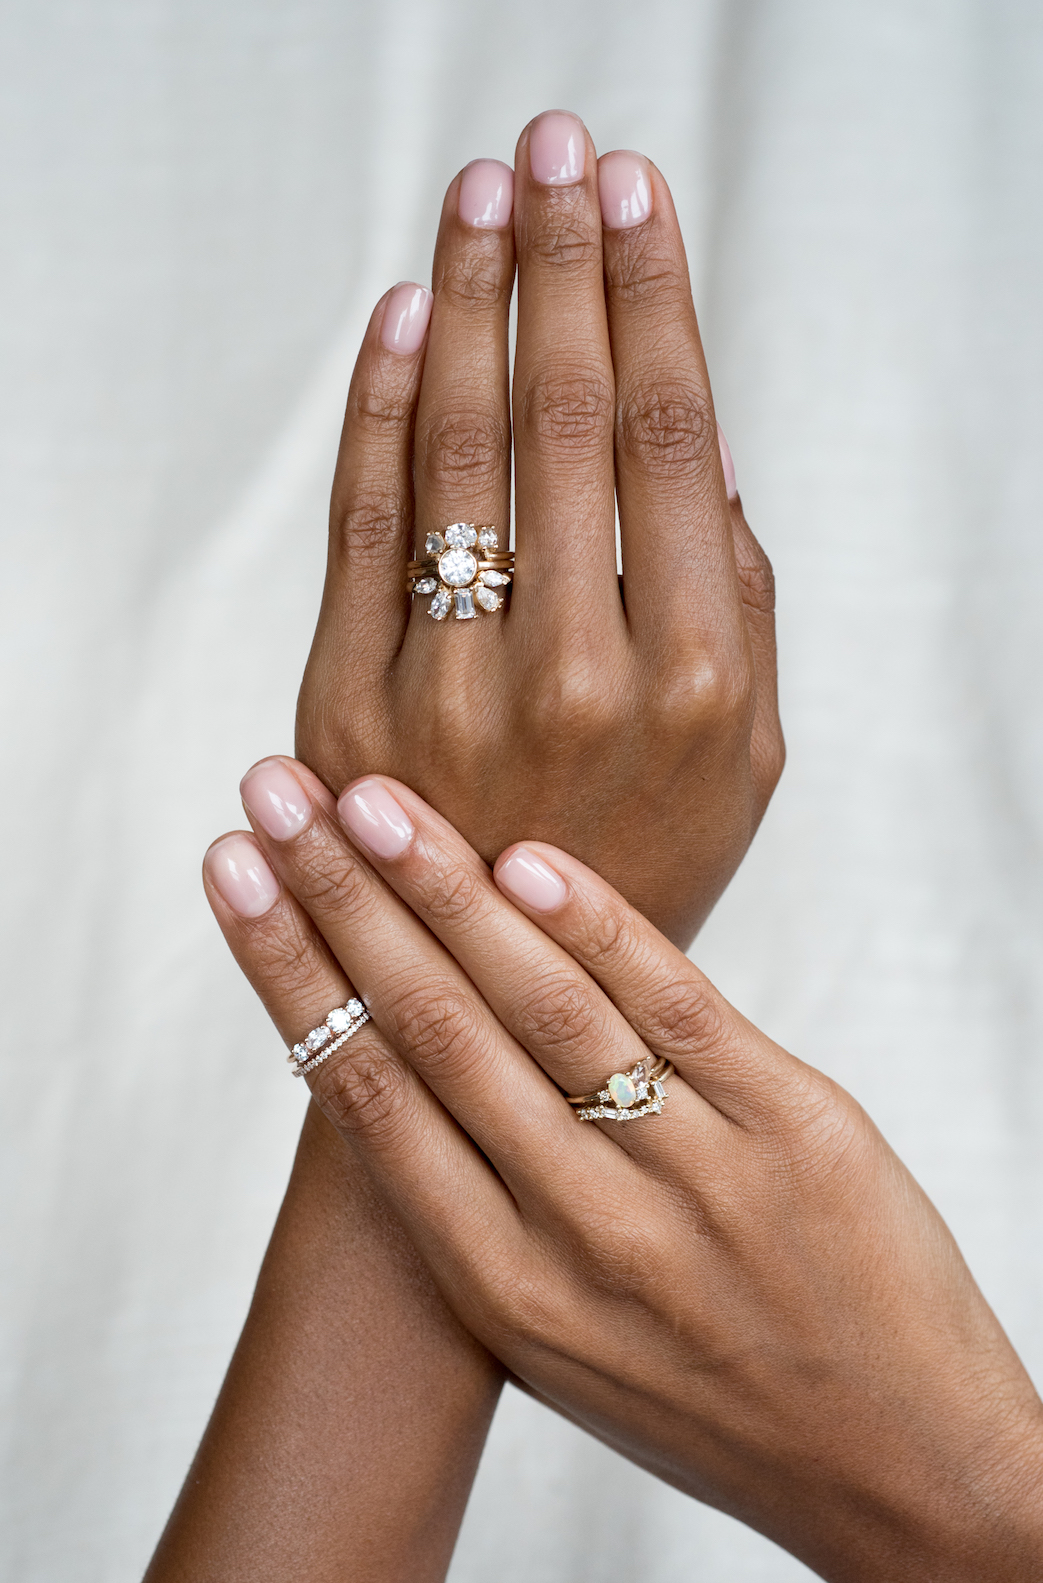 Bario Neal's Stunning Engagement Rings Shine With Traceable, Conflict-Free Diamonds & Gemstones